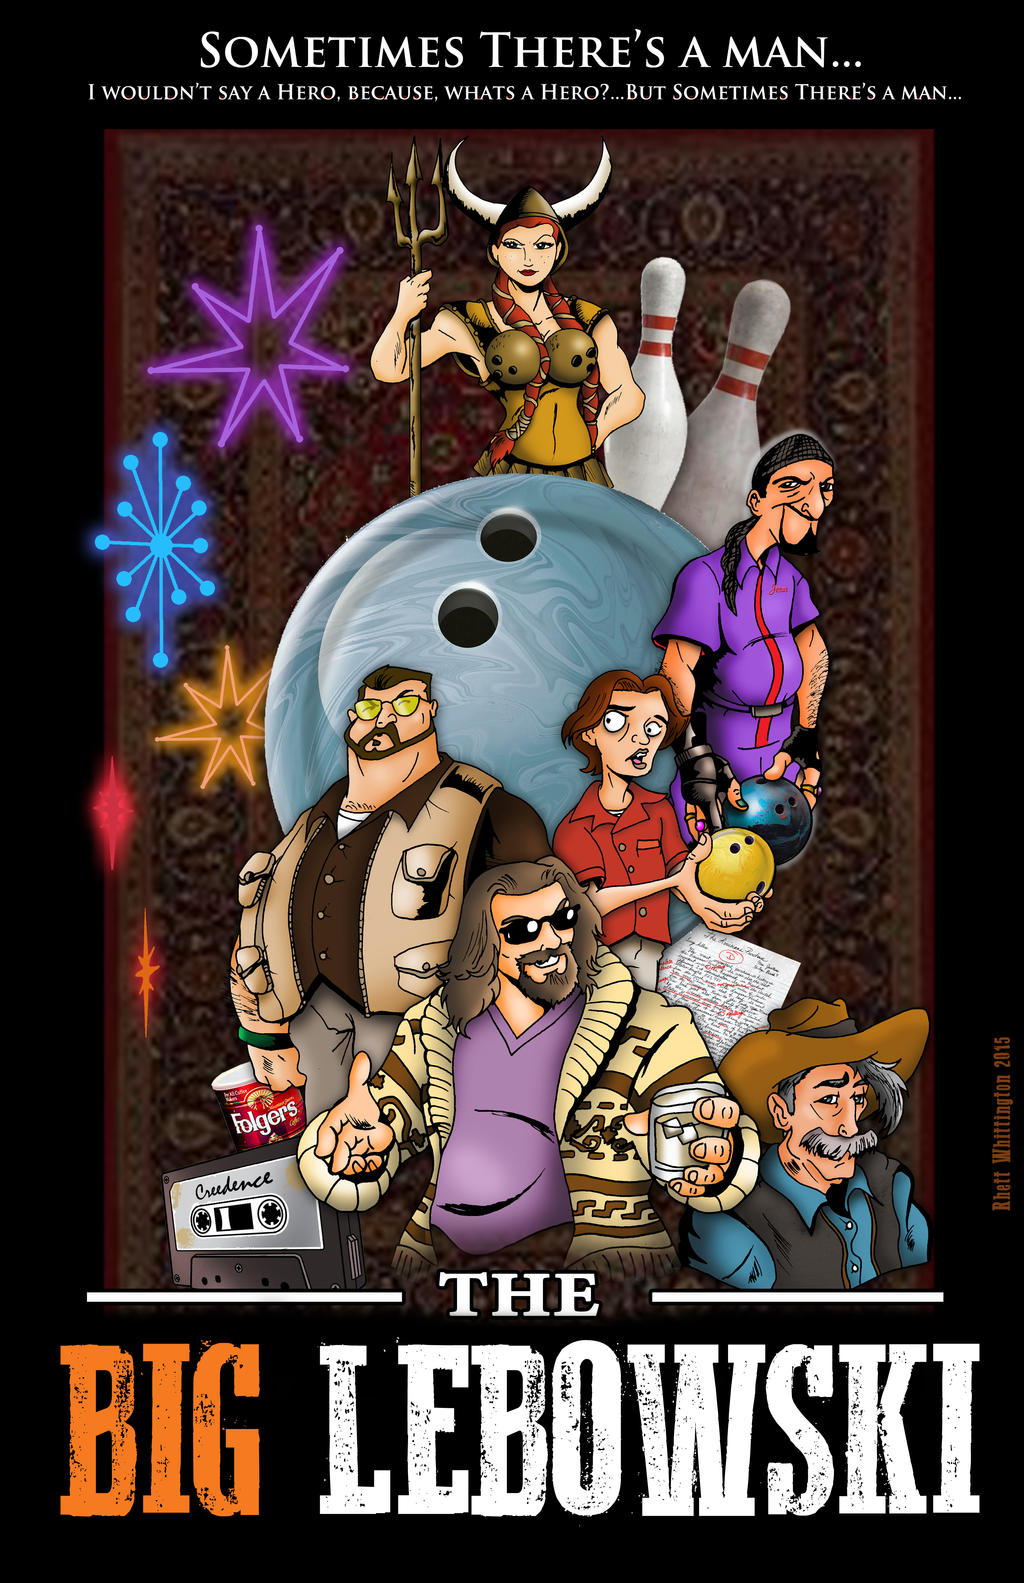 the big lebowski analysis of the The big lebowski meaning - an esoteric take on the big lebowski.